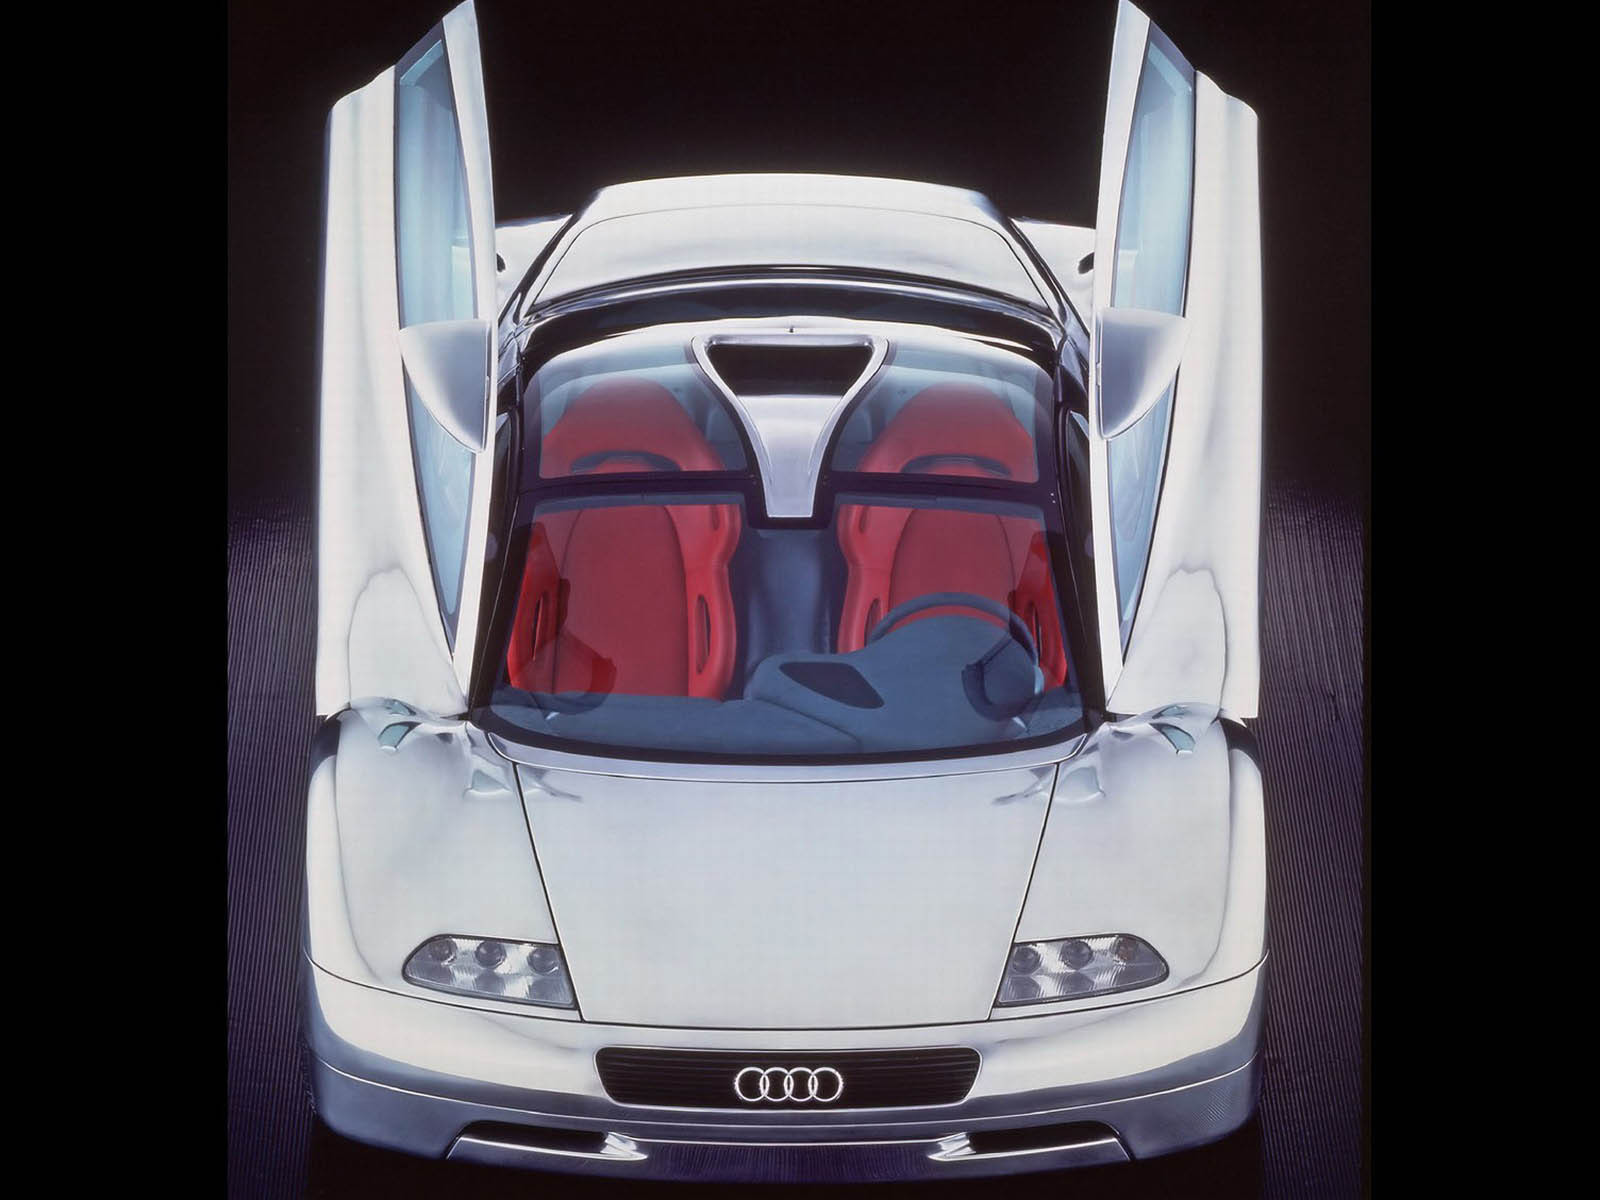 1991 audi avus concept review top speed. Black Bedroom Furniture Sets. Home Design Ideas